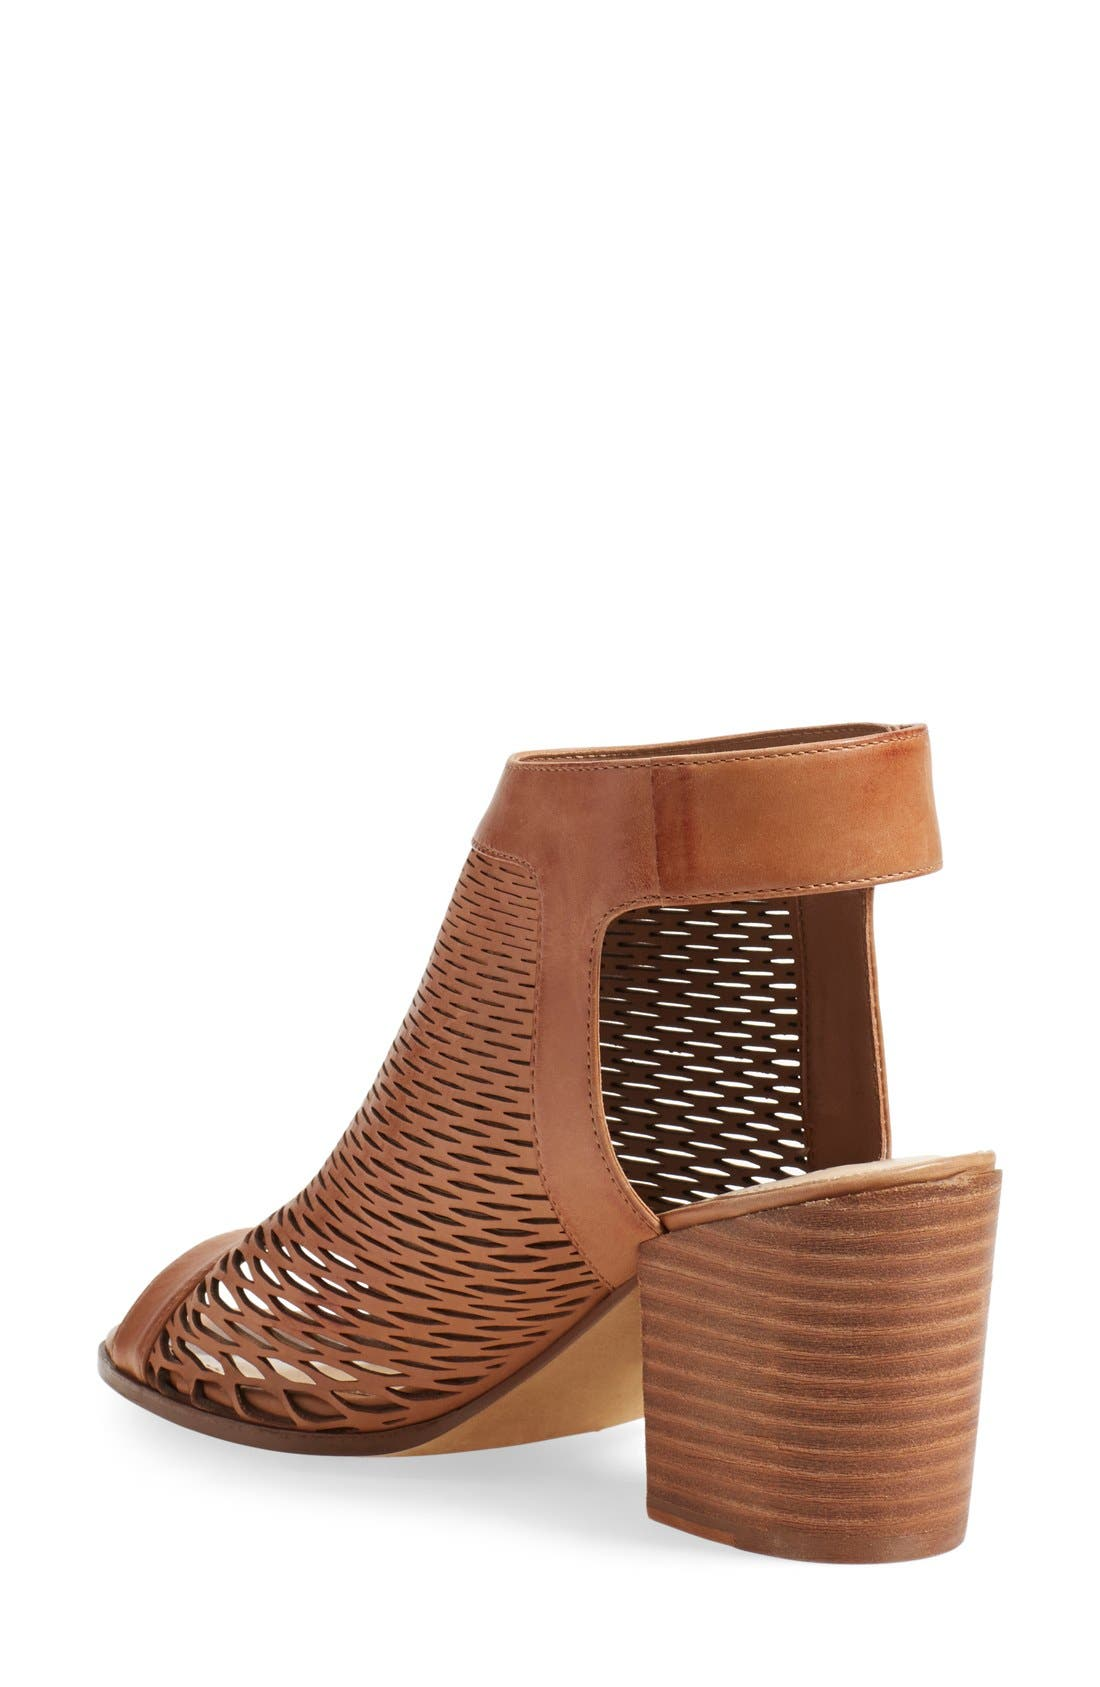 Alternate Image 2  - Vince Camuto 'Lavette' Perforated Peep Toe Bootie (Women) (Nordstrom Exclusive)